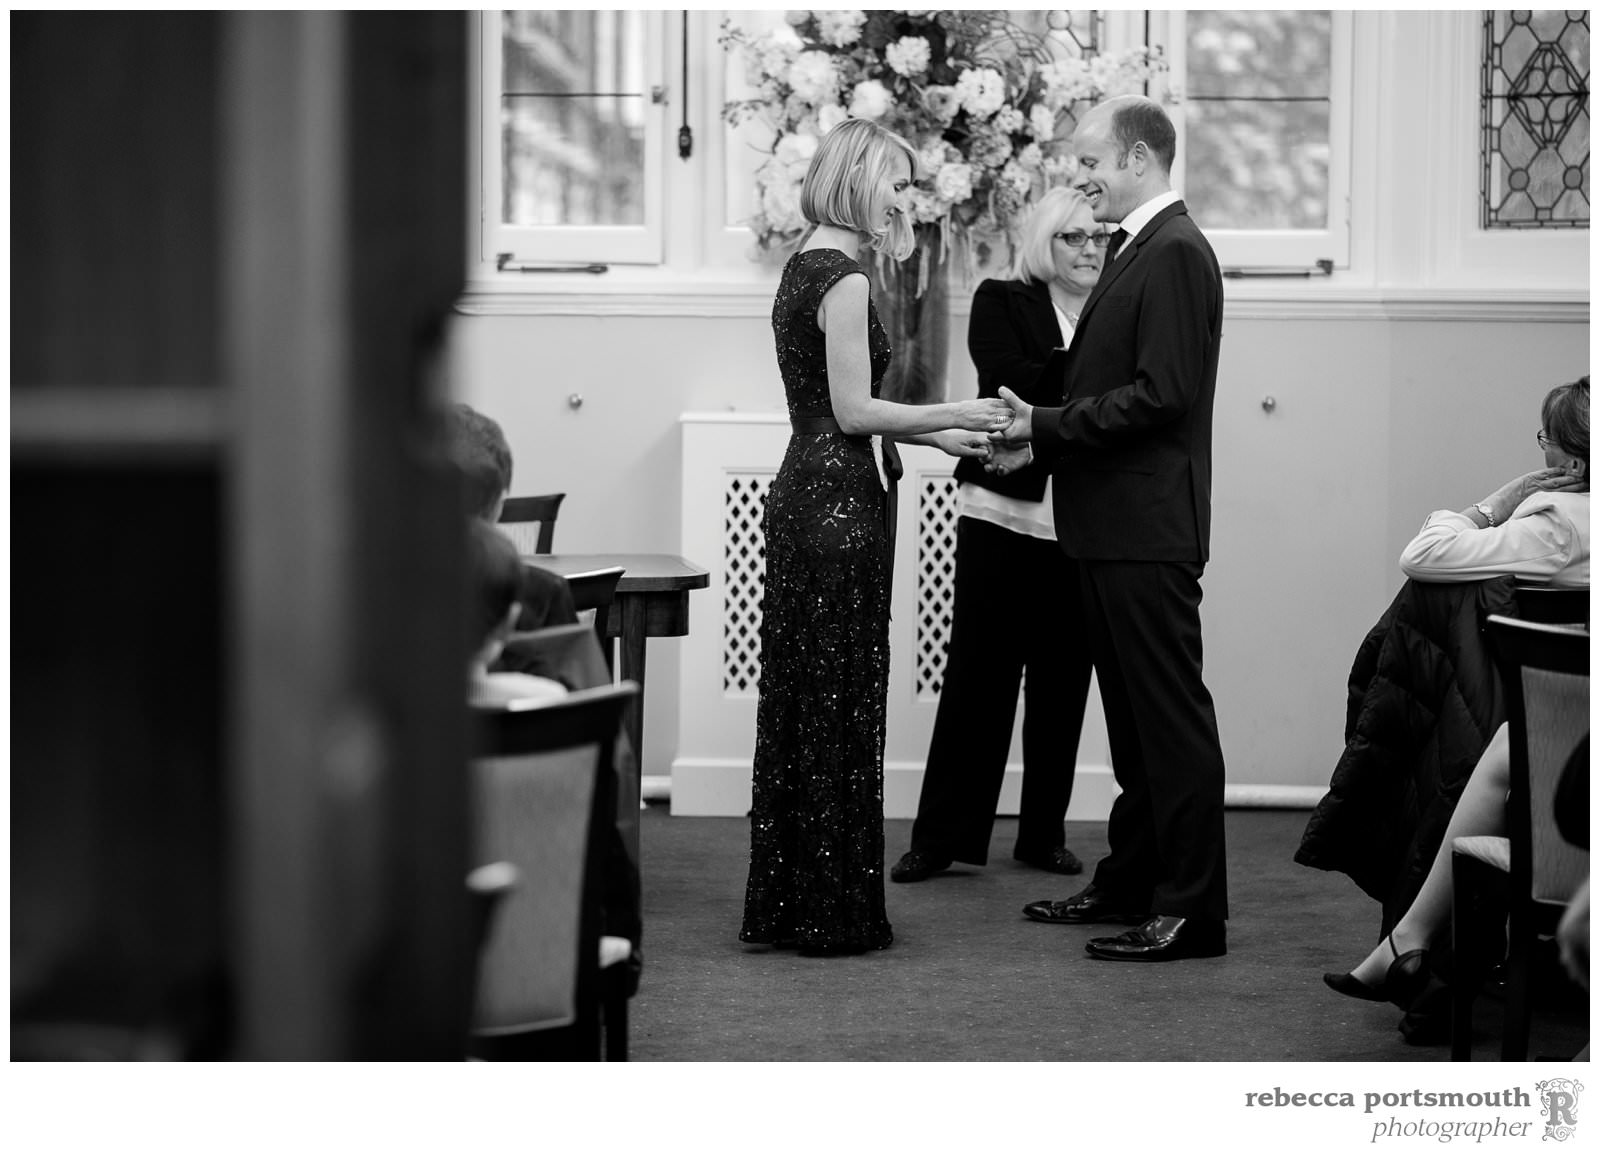 A bride and groom exchange rings in a vow renewal at Mayfair Library, in South Audley Street, London.